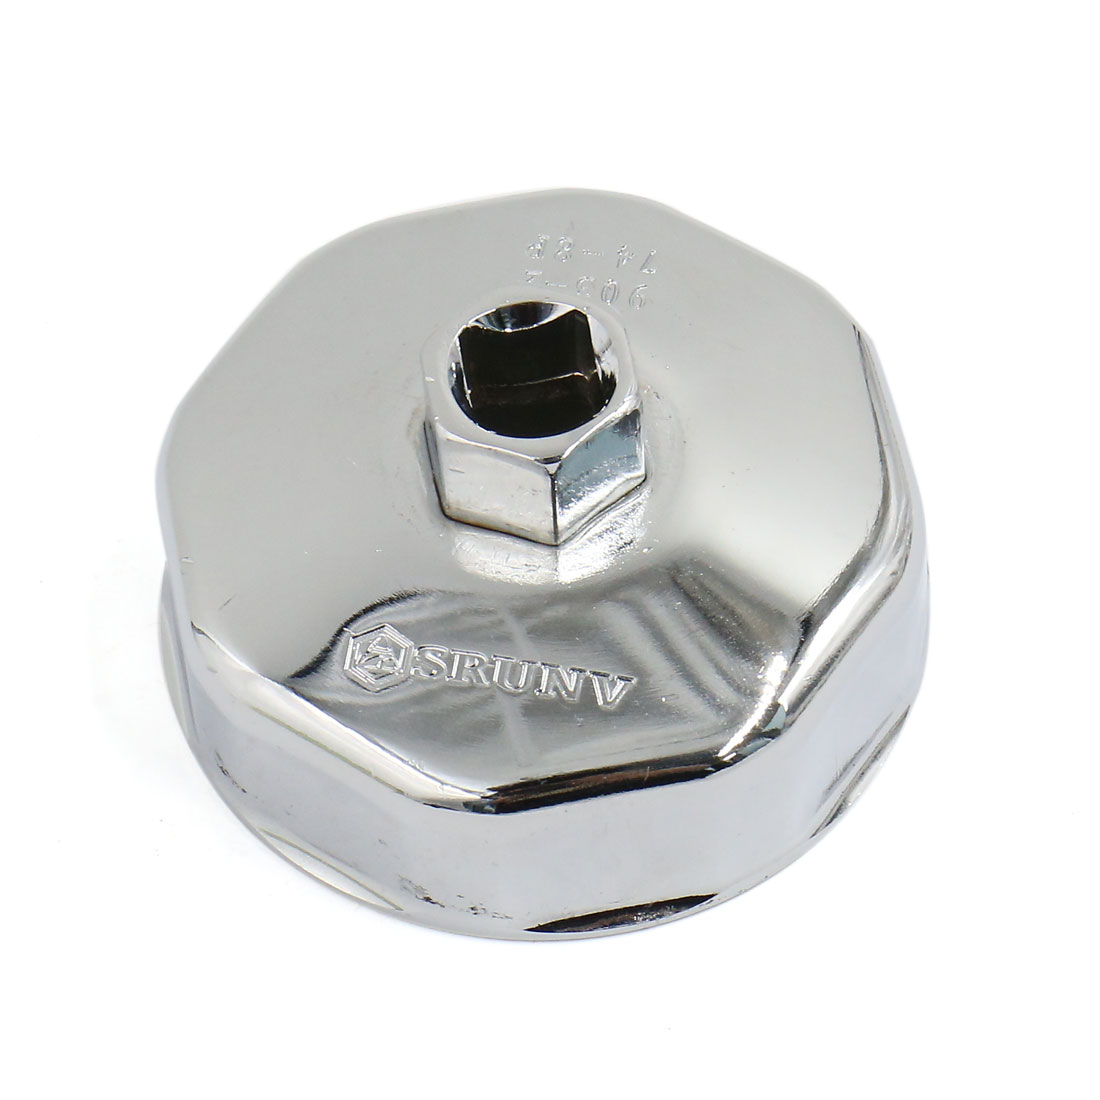 13mm Square Drive 8 Flutes Silver Tone Oil Filter Wrench Cup Style for Auto Car